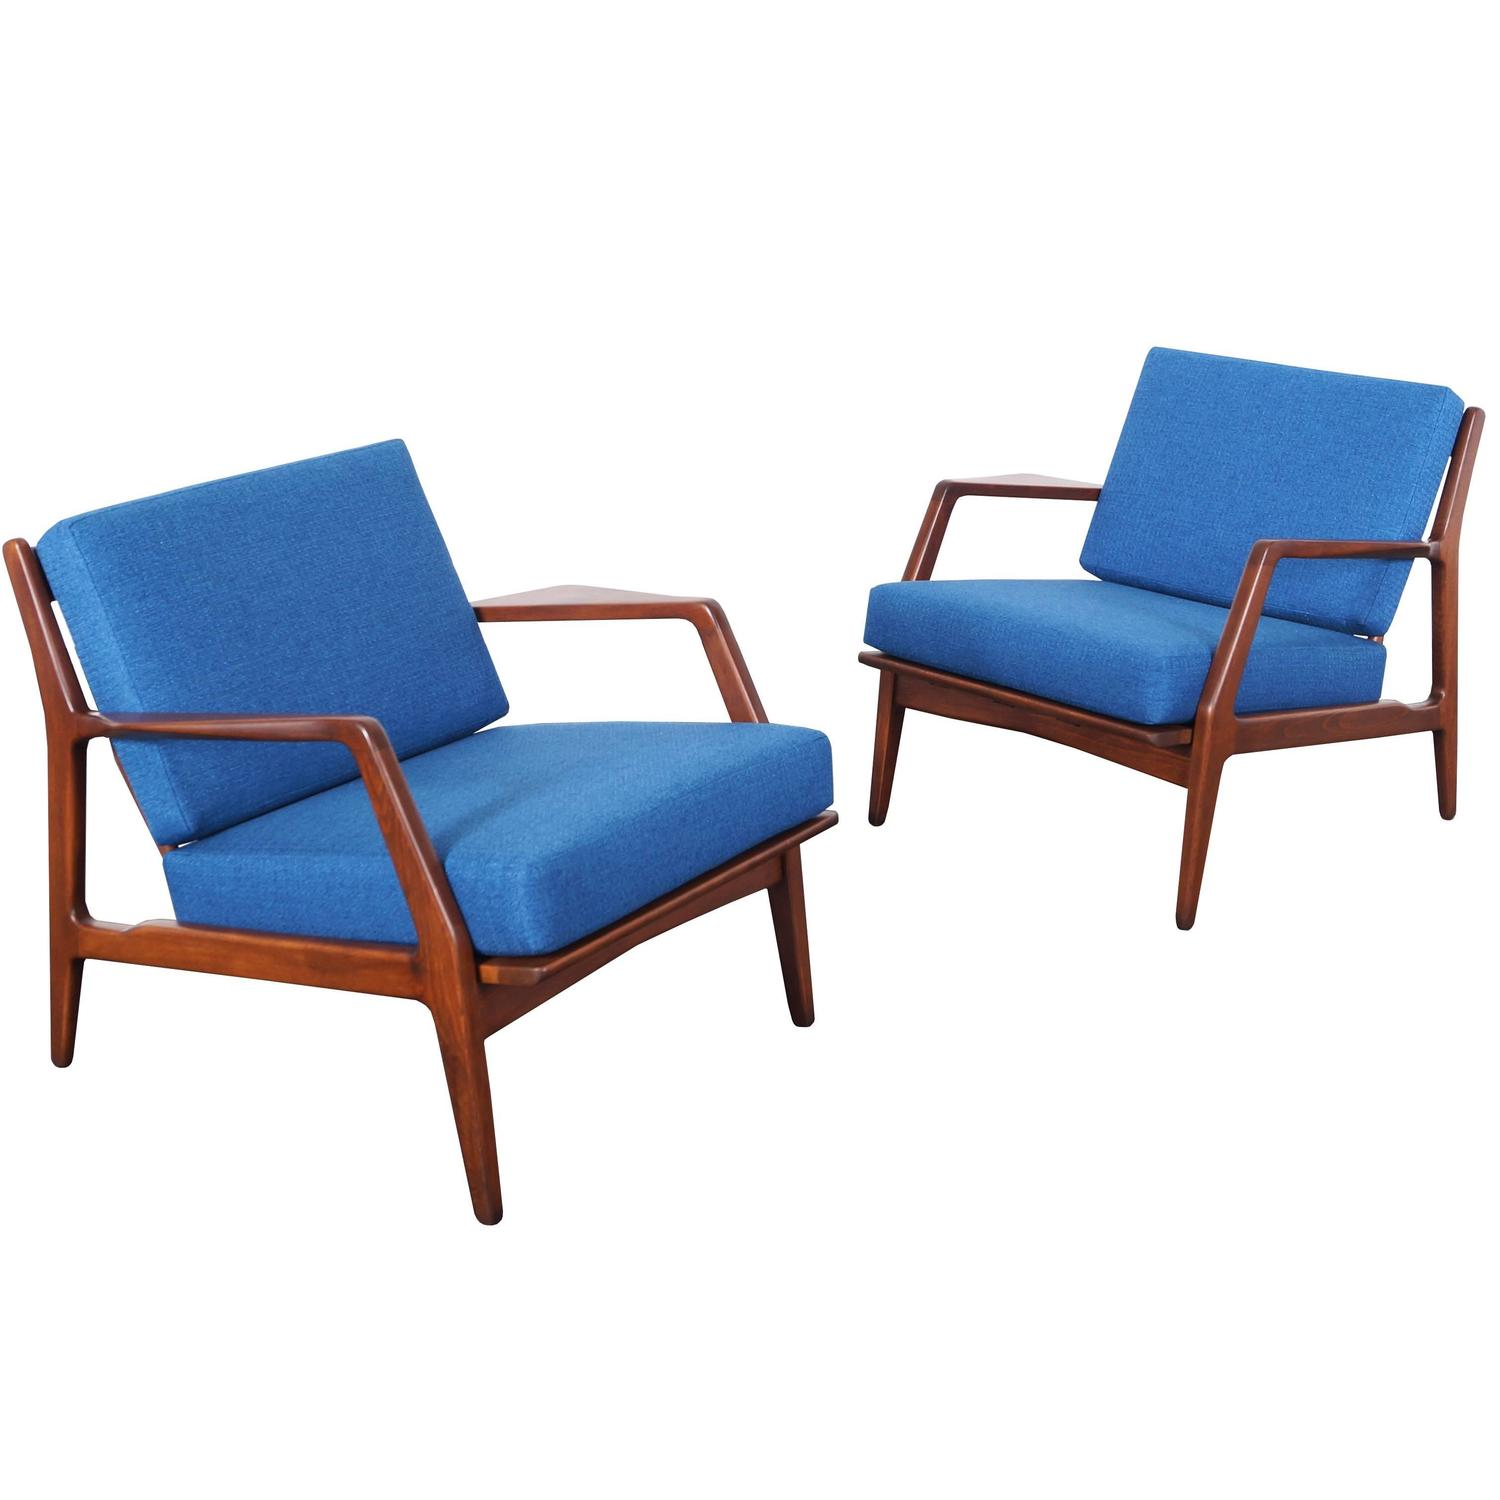 Inspirational mid century modern lounge chair for Mid century modern seating